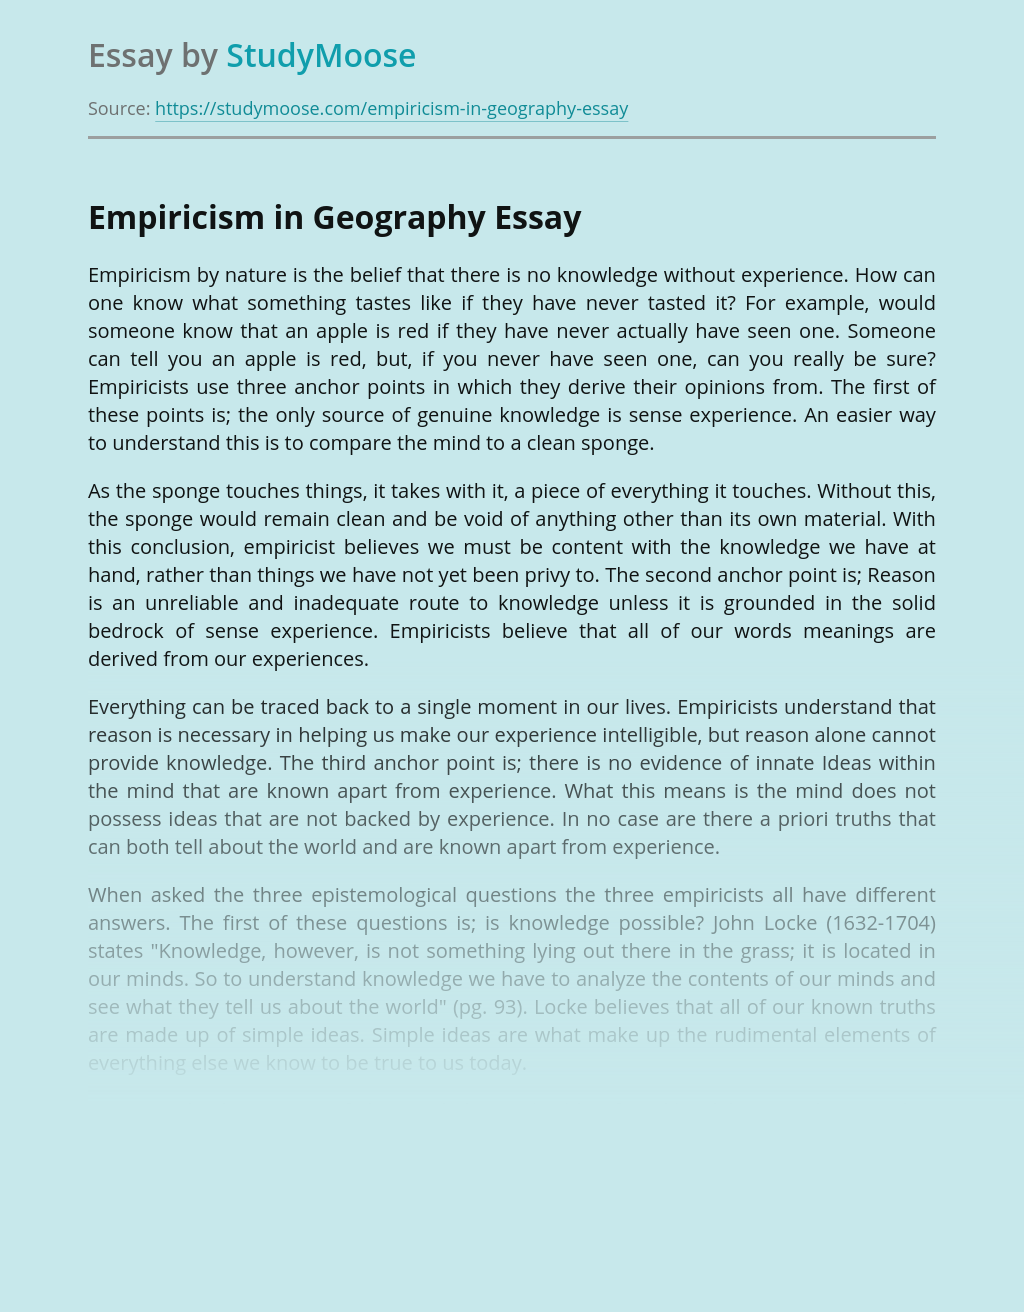 Empiricism in Geography